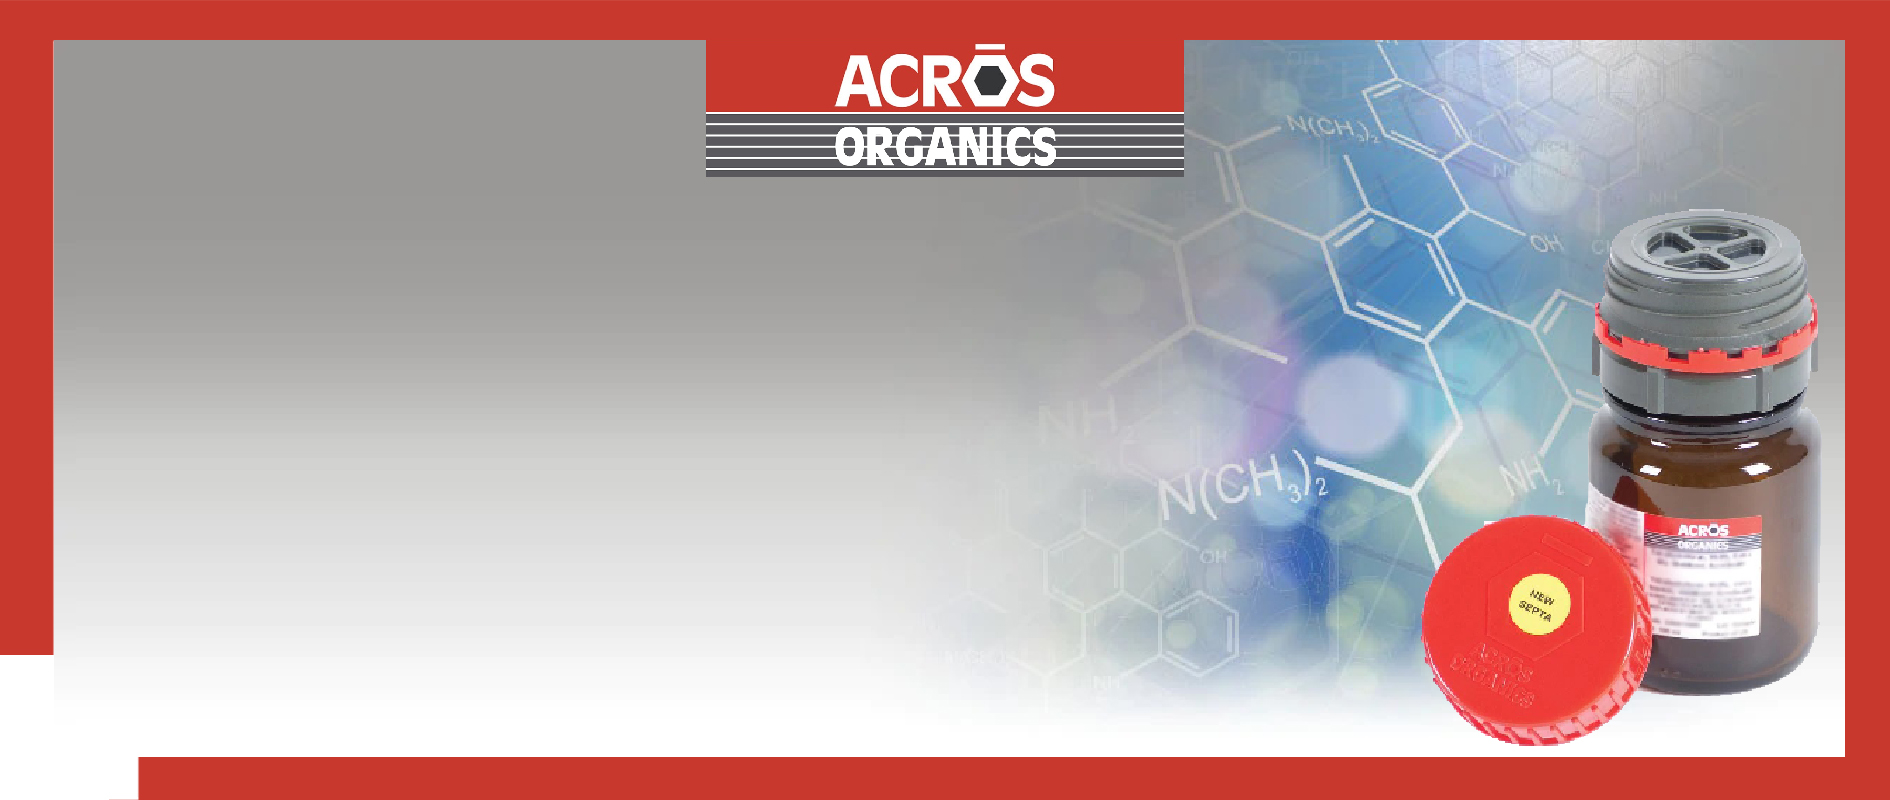 Reagents and Fine Chemicals The Acros Organics™ brand delivers consistent, high quality organics and fine chemicals at great savings